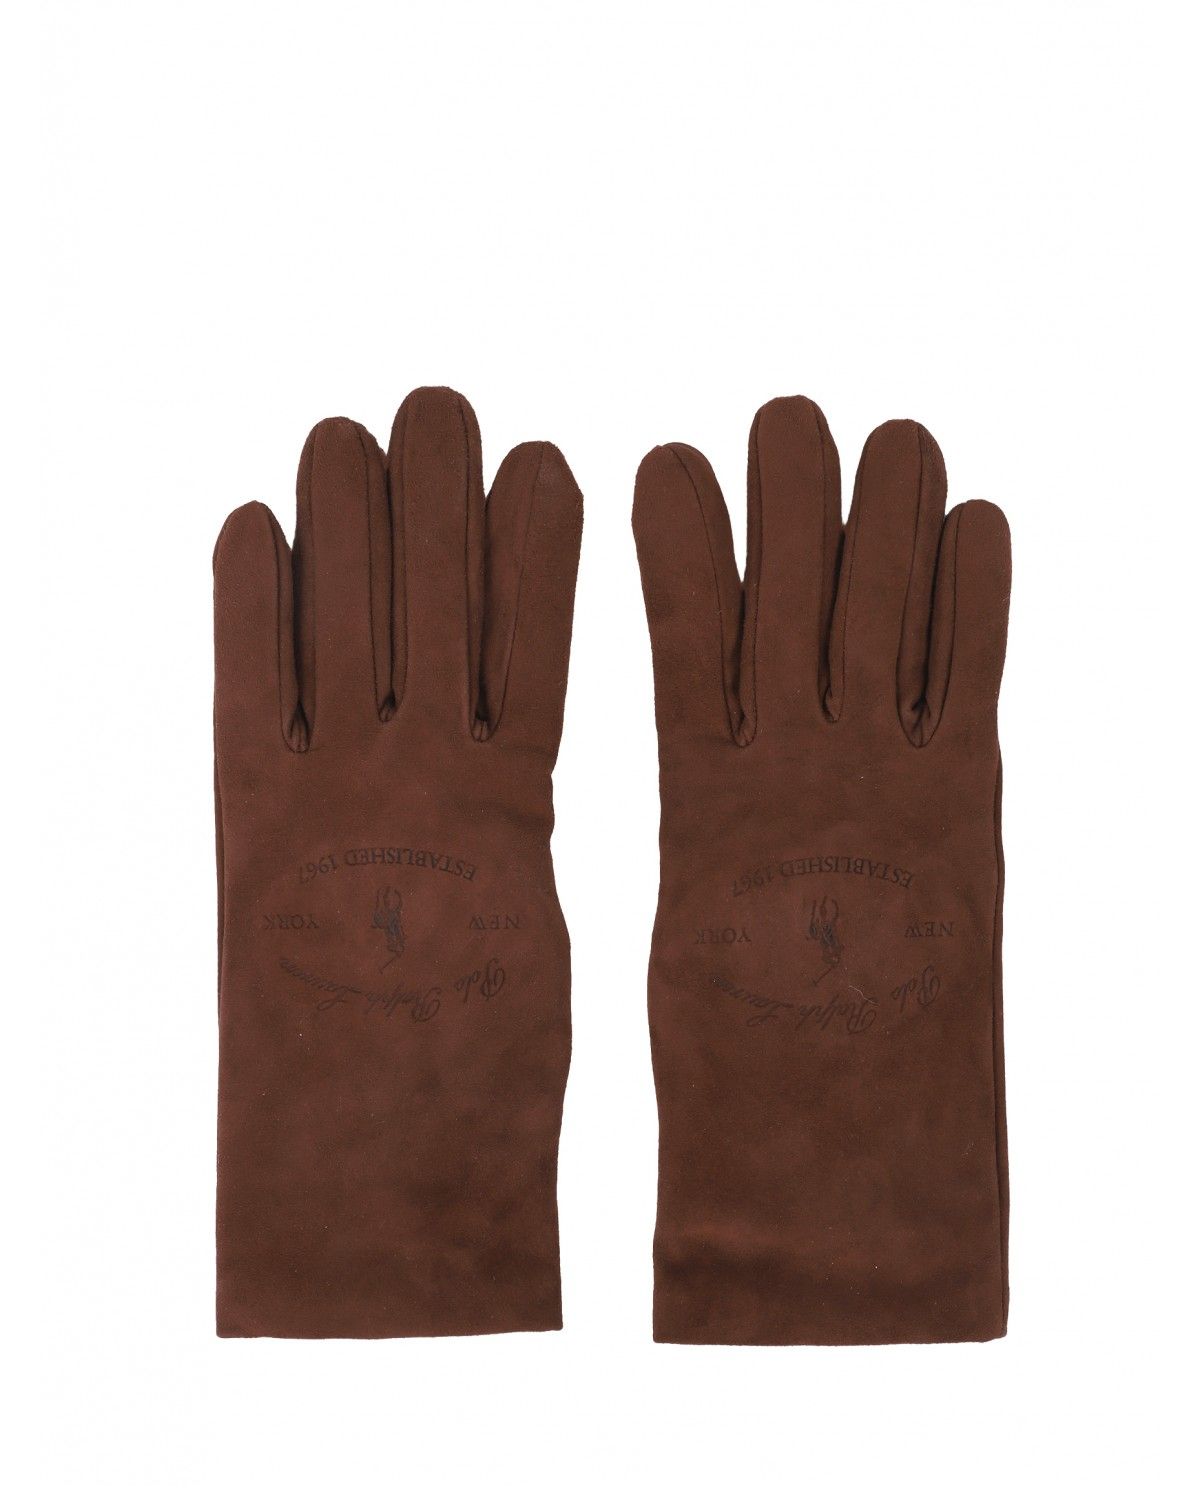 Polo Ralph Lauren brown gloves